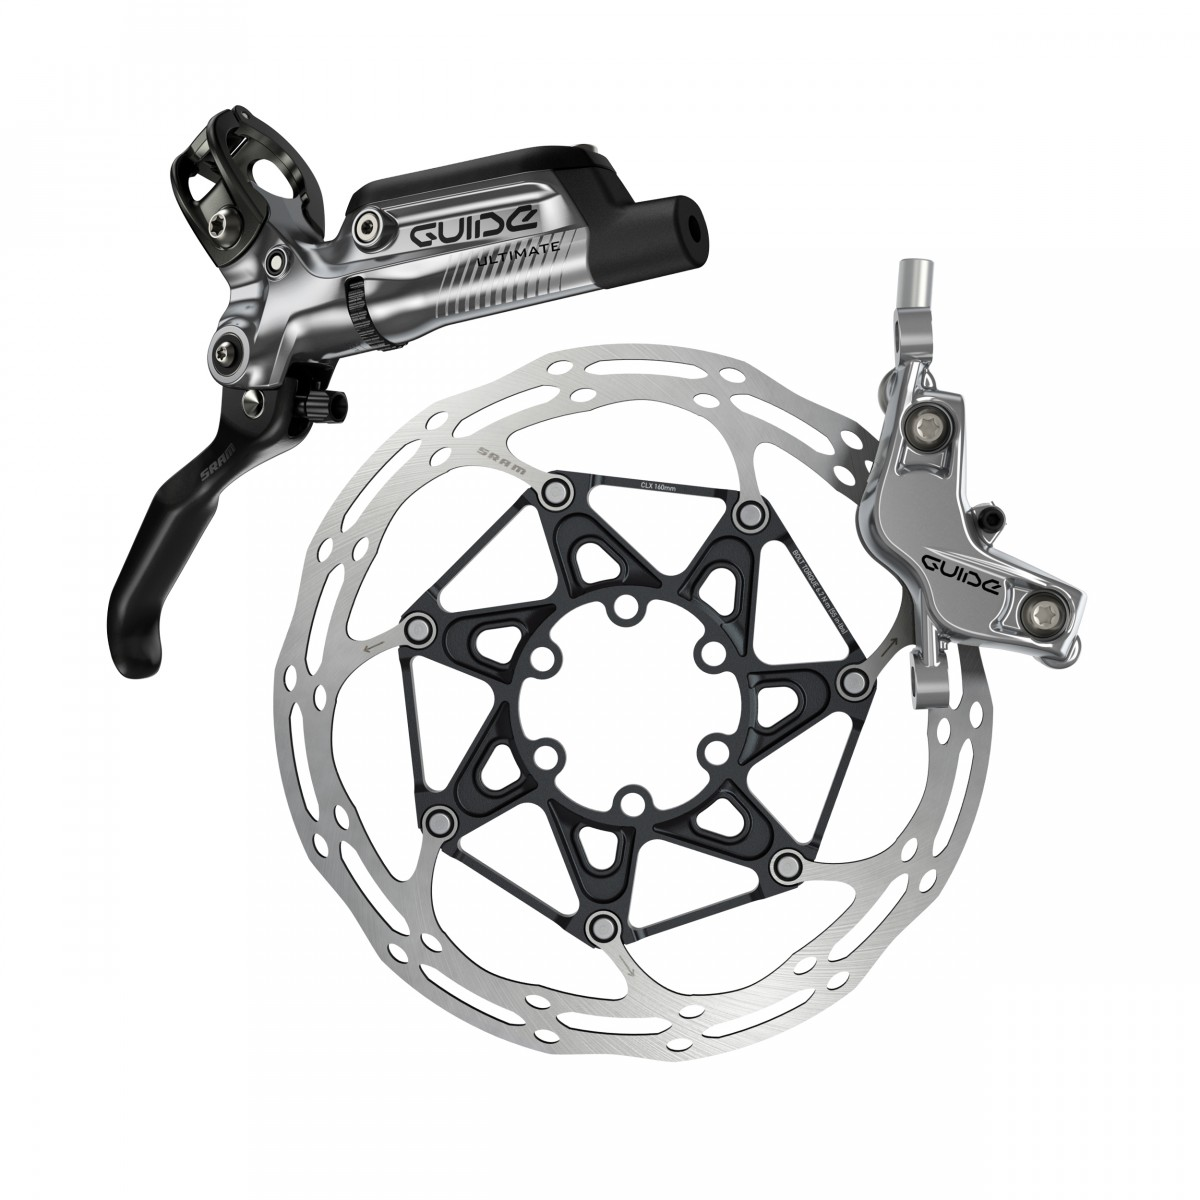 news  sram announces new guide ultimate high-powered brakes